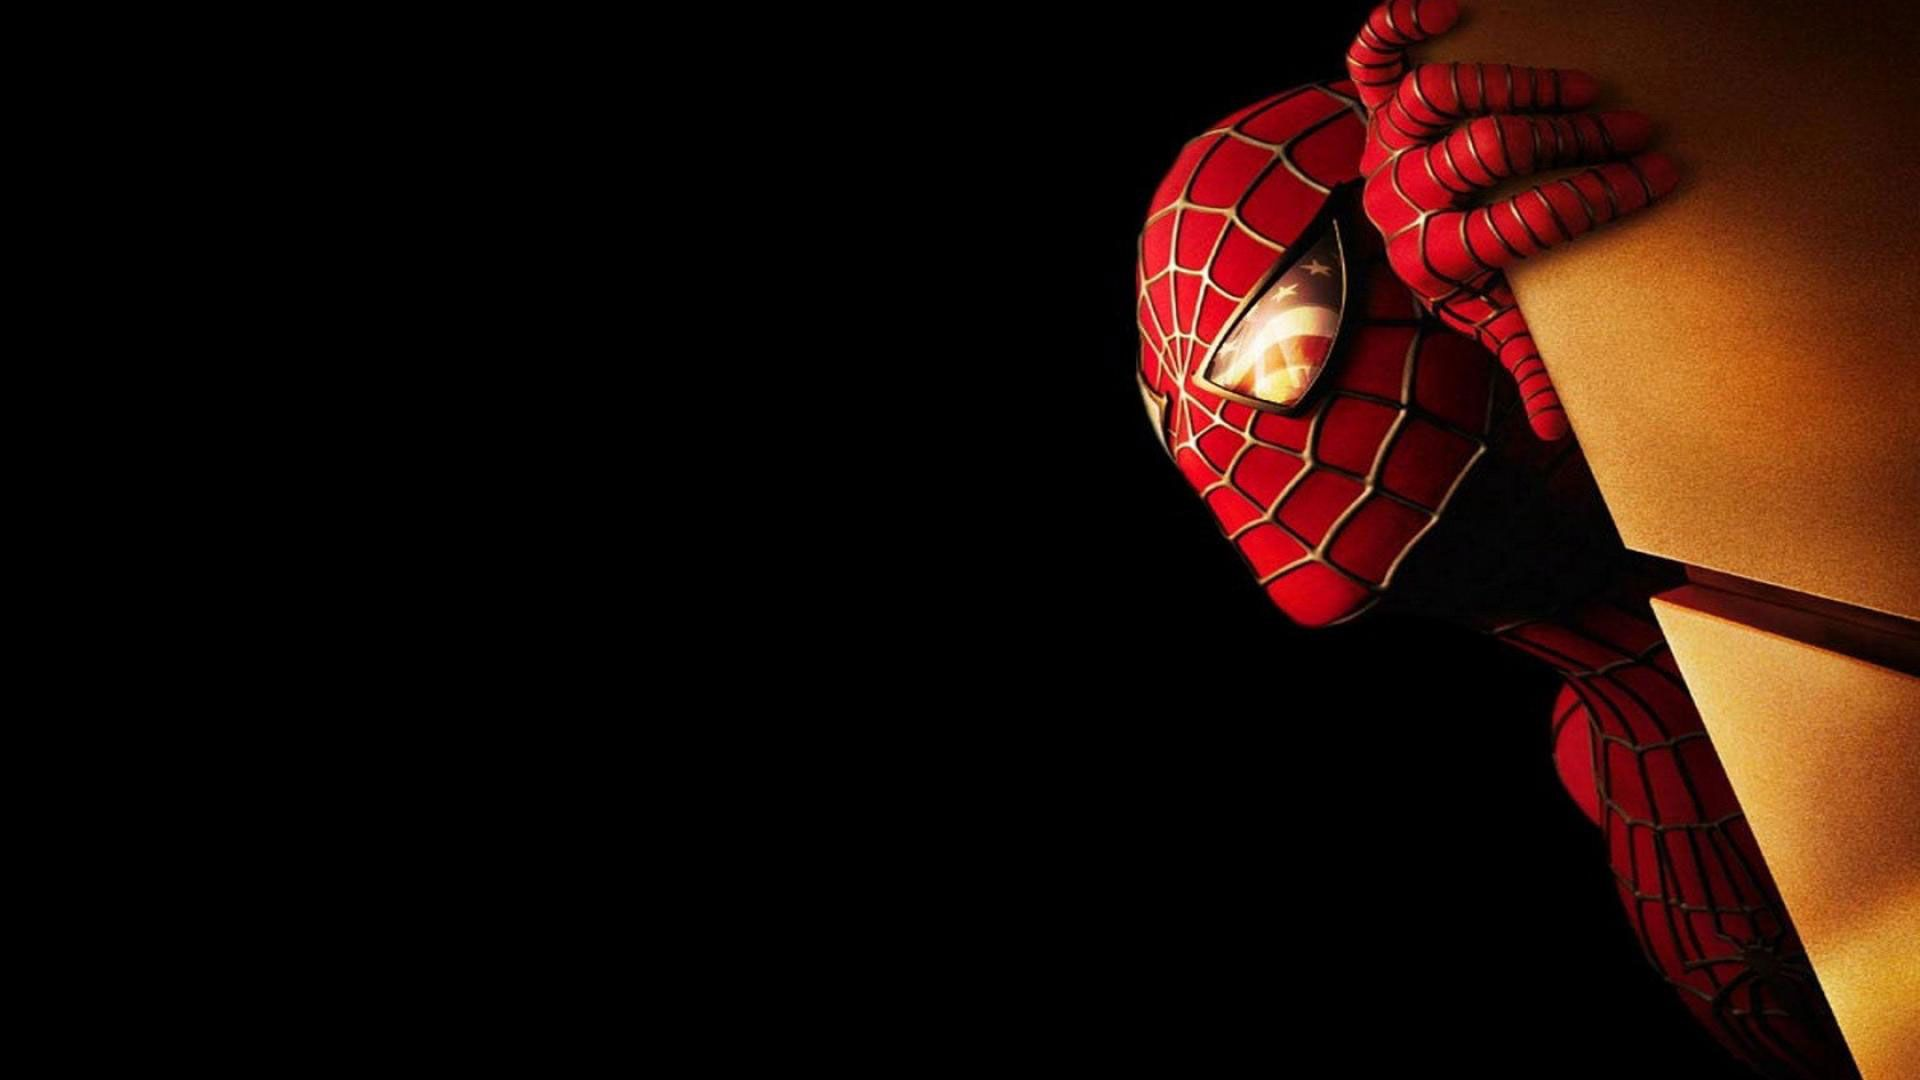 Hd Pics Photos Attractive Spiderman Amazing Hollywood Stunning Superhero Hd Quality Desktop Background Wallpaper Spiderman Pictures Man Wallpaper Spiderman